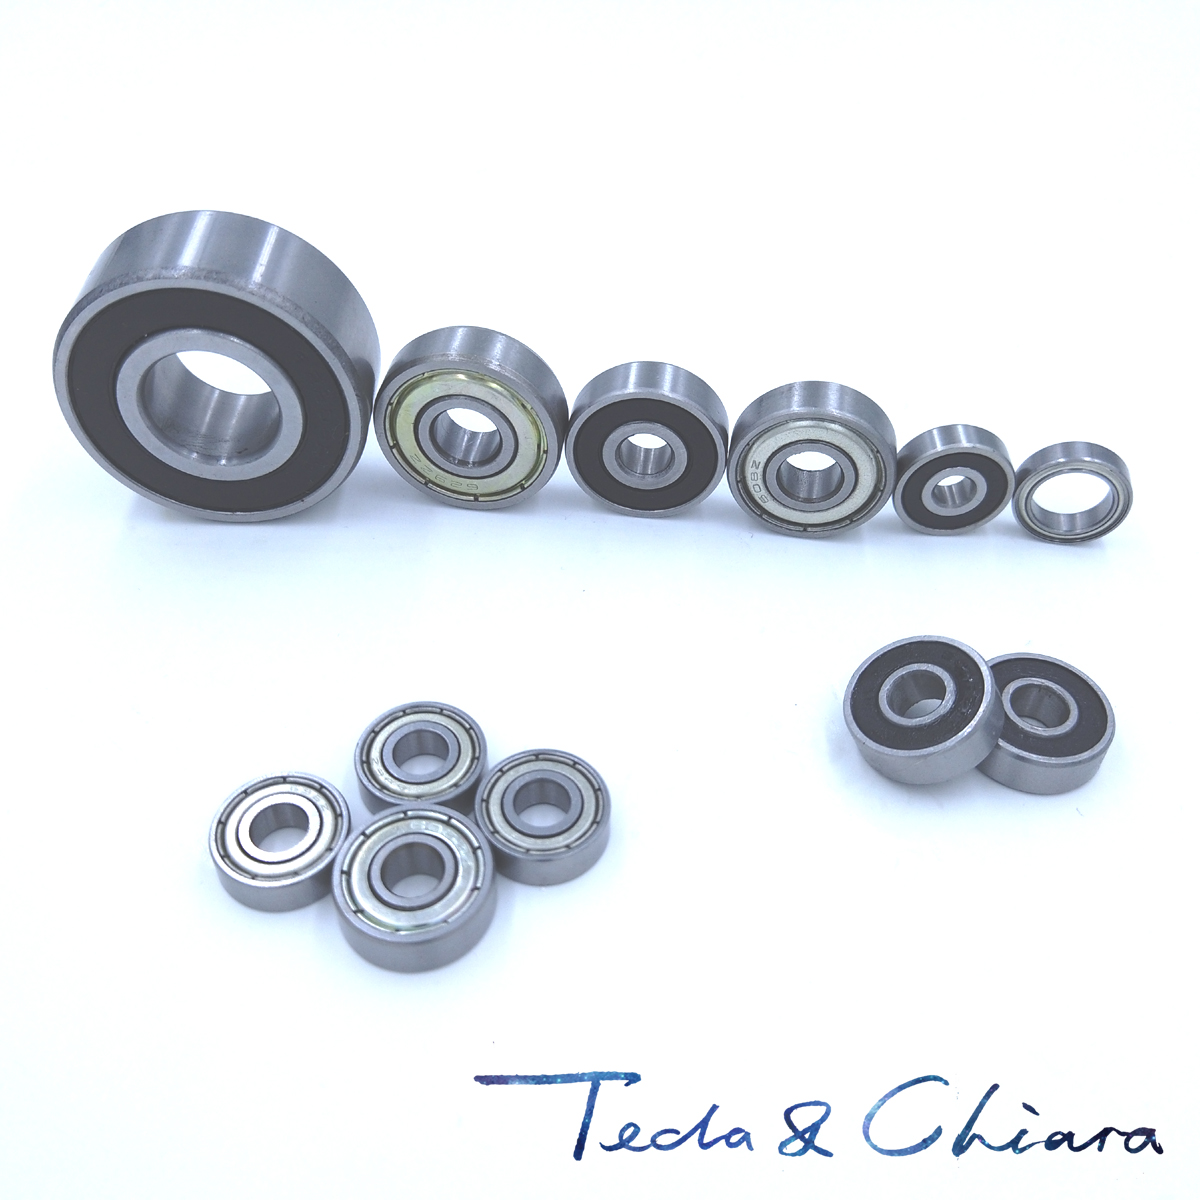 6201 6201ZZ <font><b>6201RS</b></font> 6201-2Z 6201Z 6201-2RS ZZ RS RZ 2RZ Deep Groove Ball Bearings 12 x 32 x 10mm High Quality image